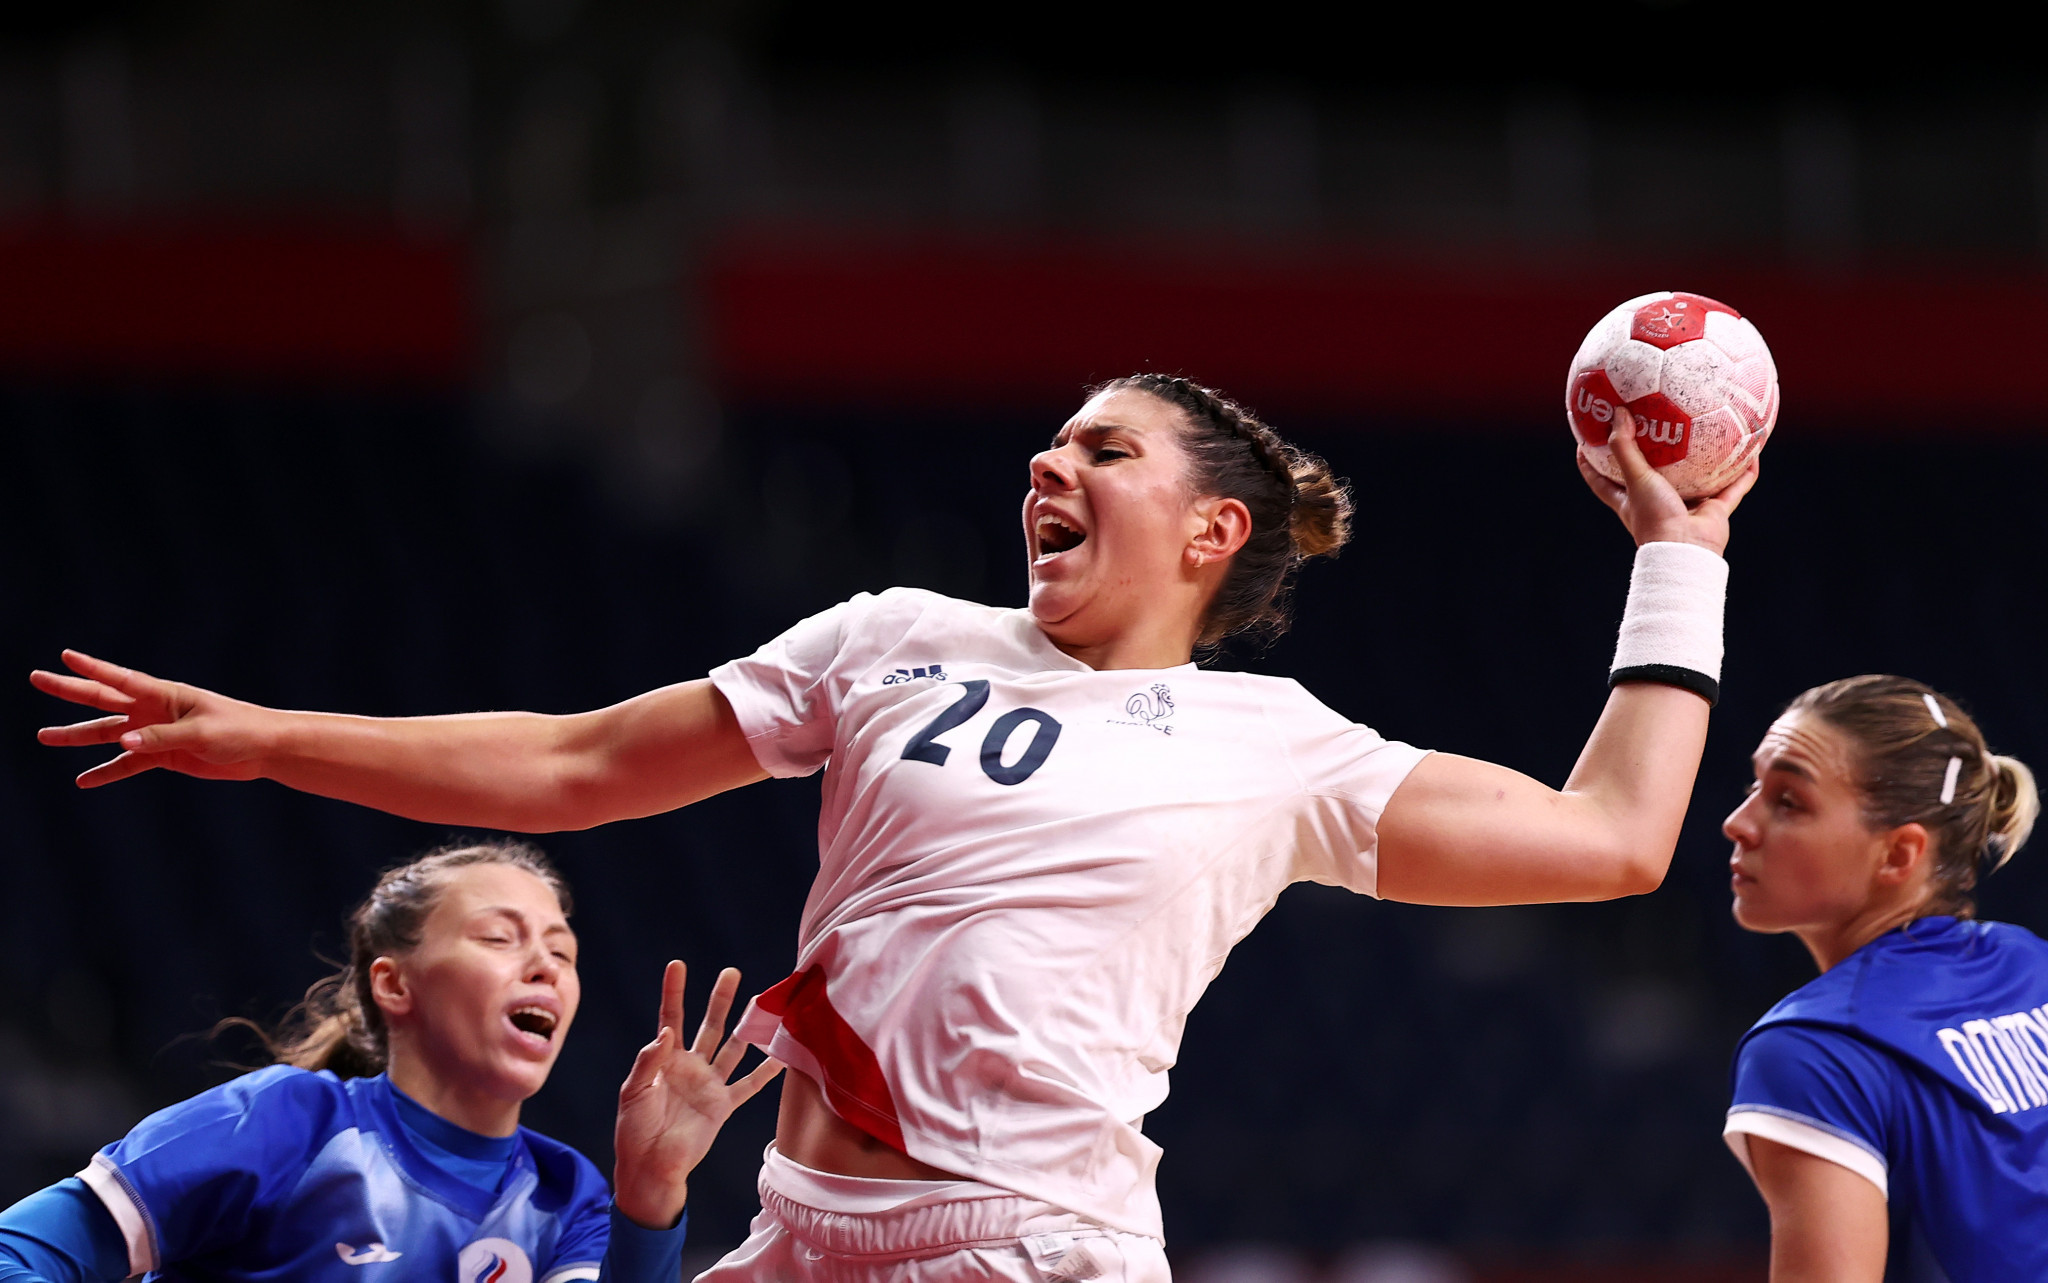 France, playing in white, won the women's handball title, a day after the country's men's team were also victorious ©Getty Images